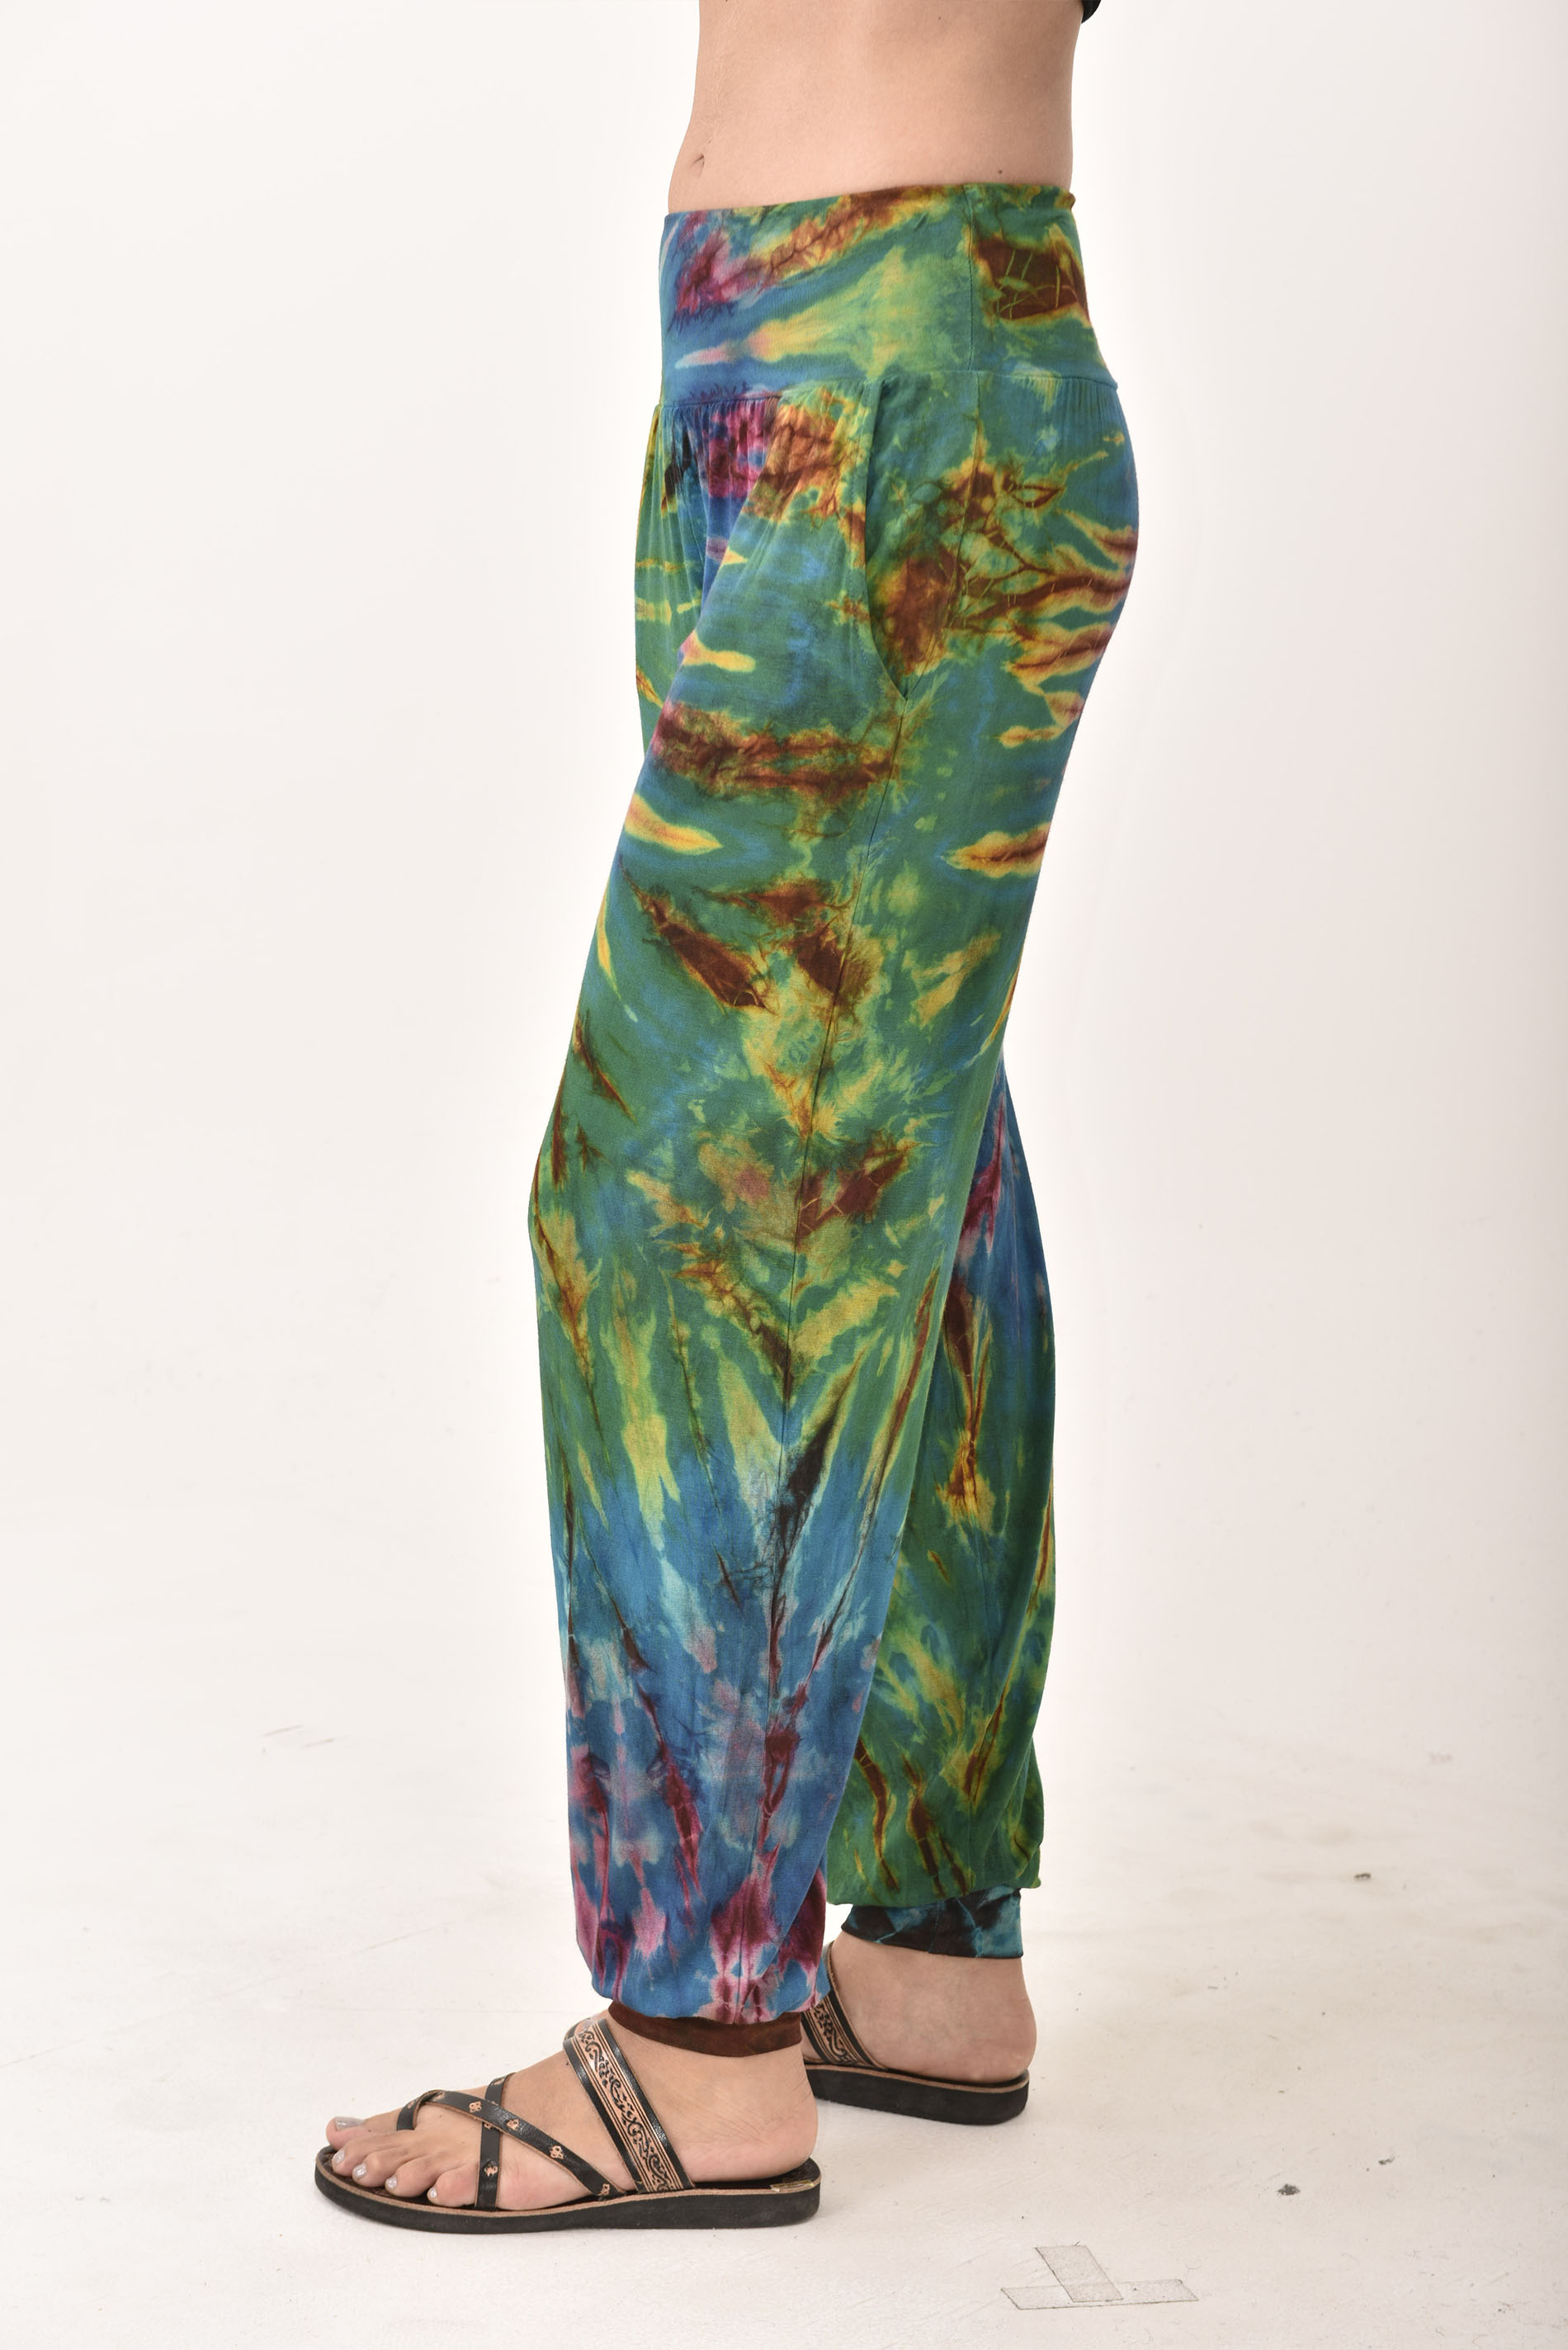 Hand Painted Tie Dye deluxe Harem Pants on higher quality Rayon/Spandex blend, Blue-Green